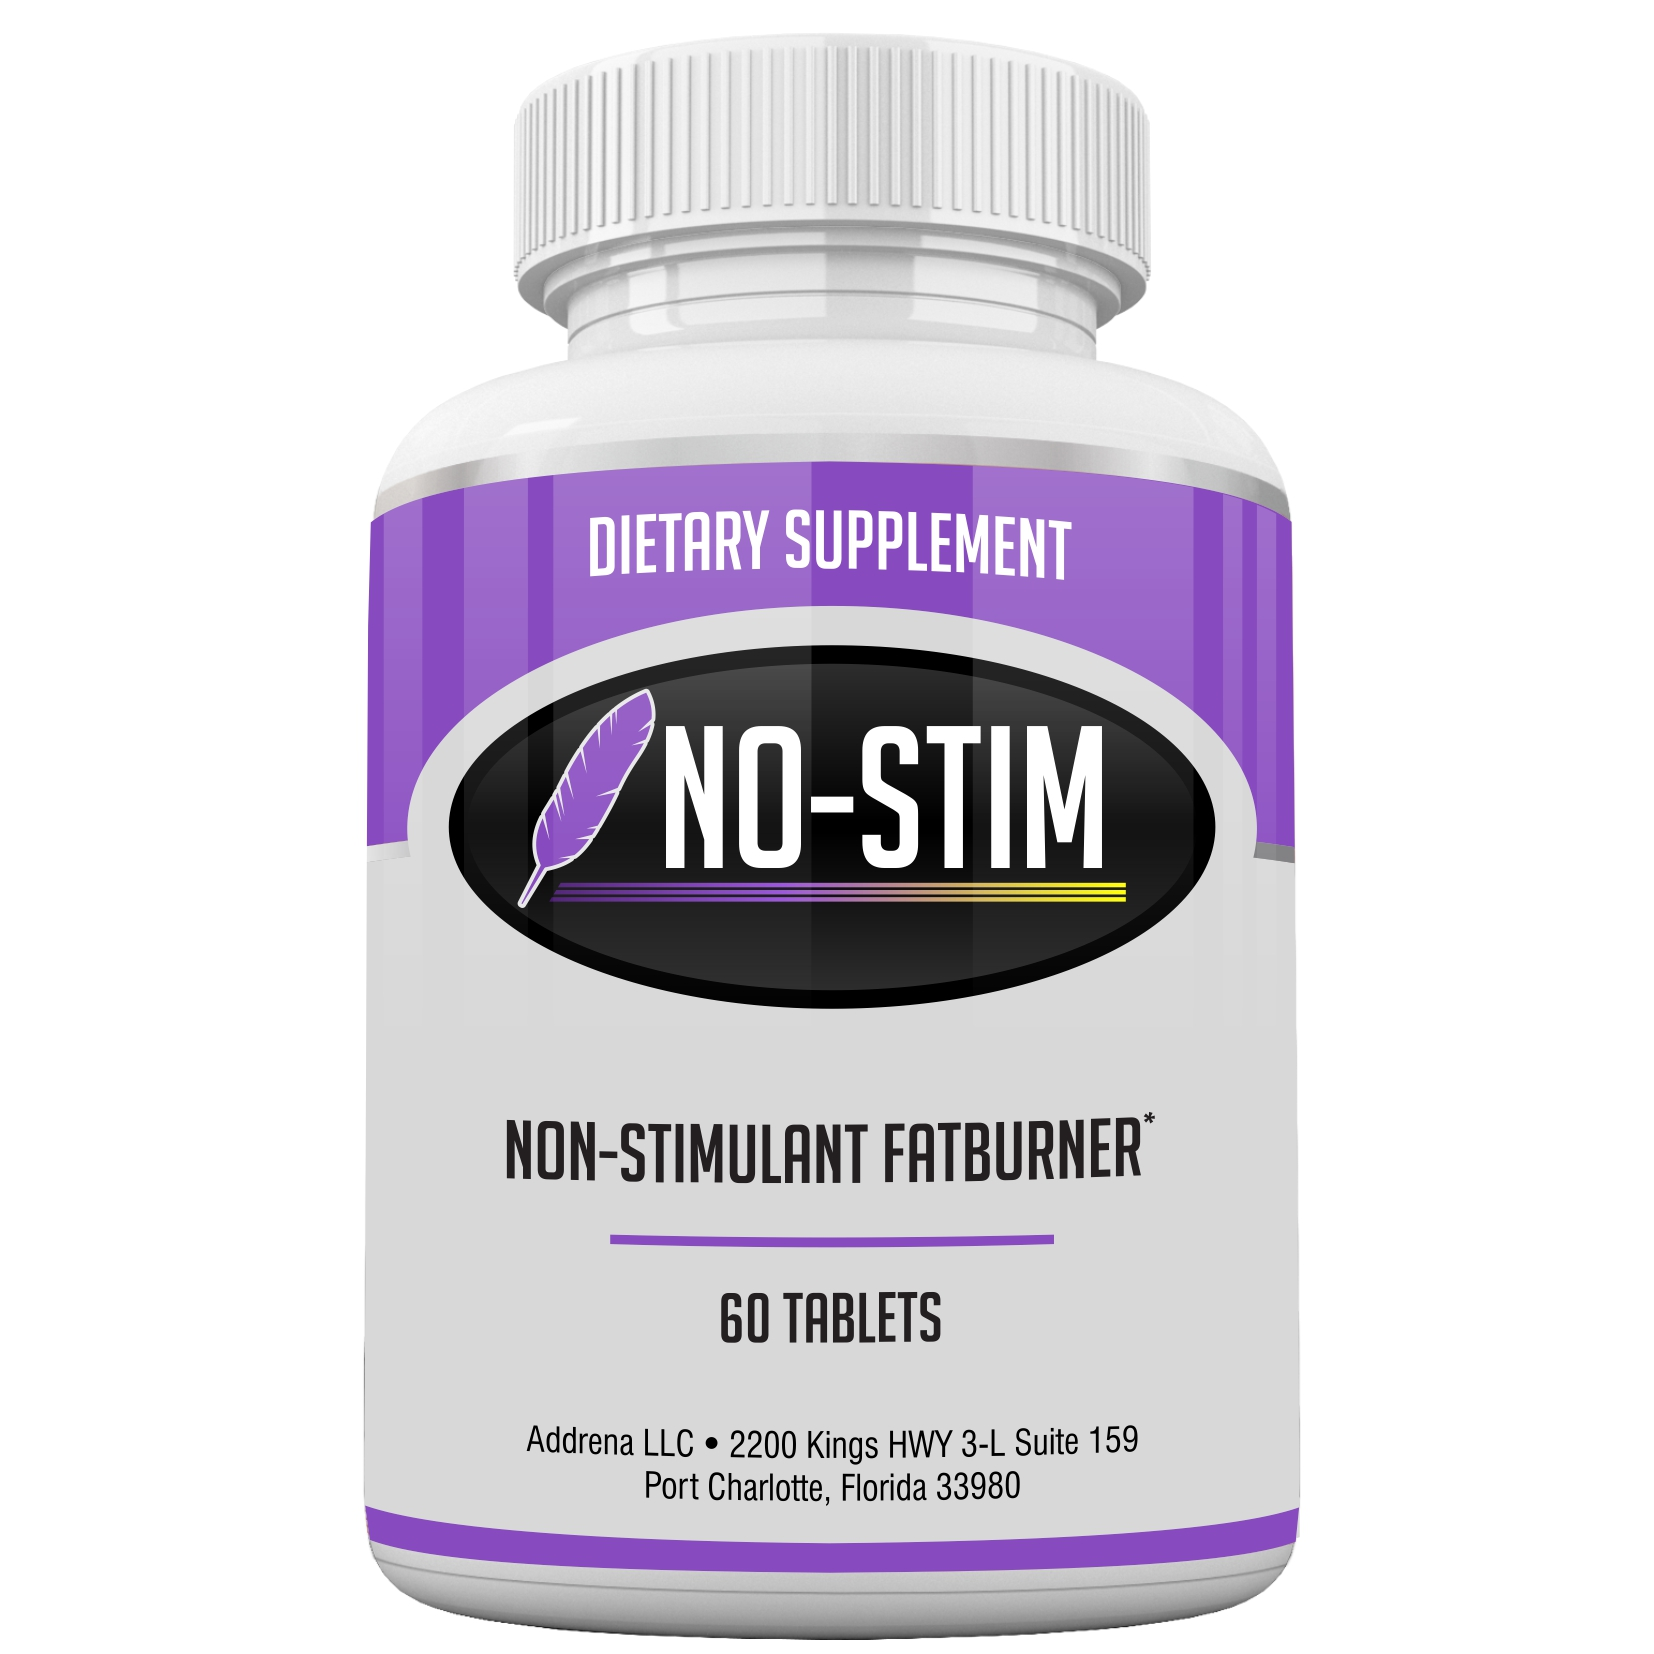 Non Stimulant Fat Burner Diet Pills That Work No Stimulant Appetite Suppressant Best Caffeine Free Weight Loss Supplement For Women Men Natural